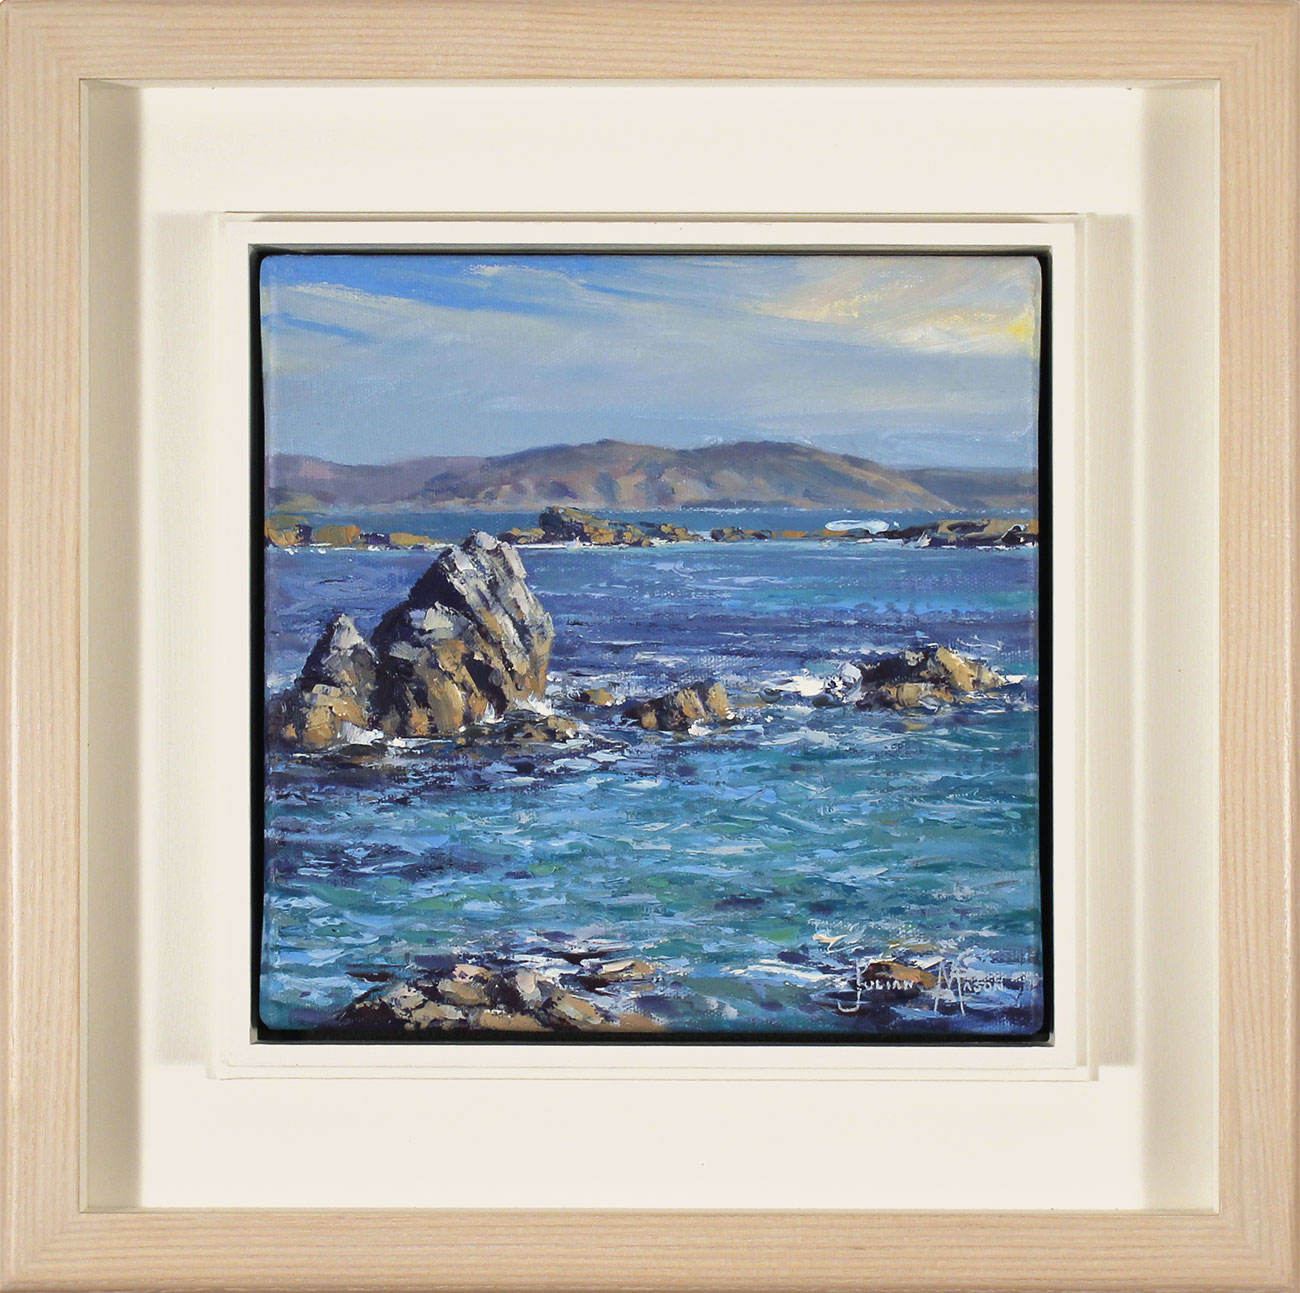 Julian Mason, Original oil painting on canvas, Colours of Iona, click to enlarge